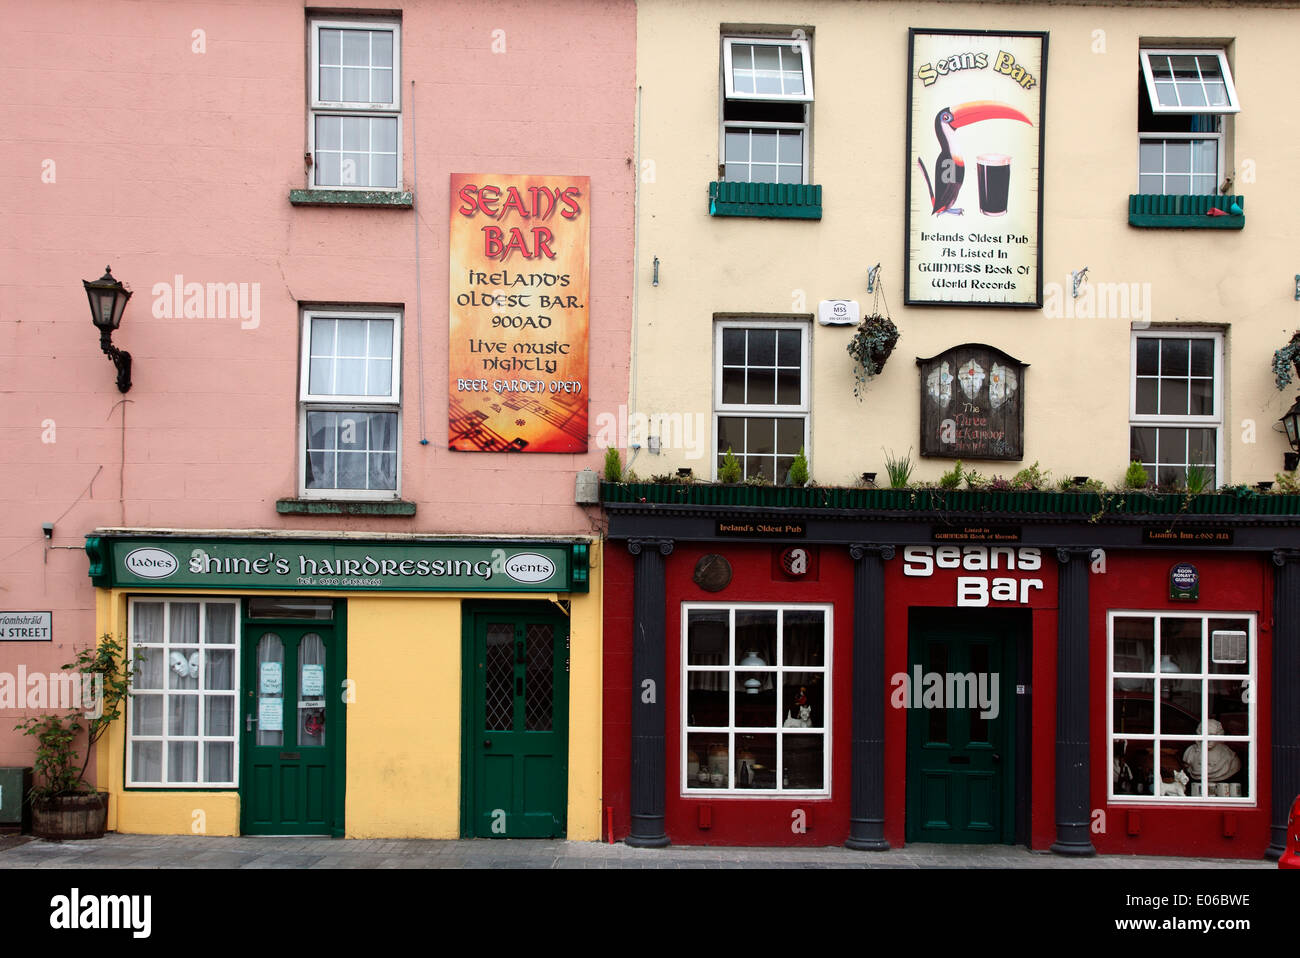 Athlone streetscape showing Seans Bar, the oldest pub in Ireland and Shines Hairdresser - Stock Image